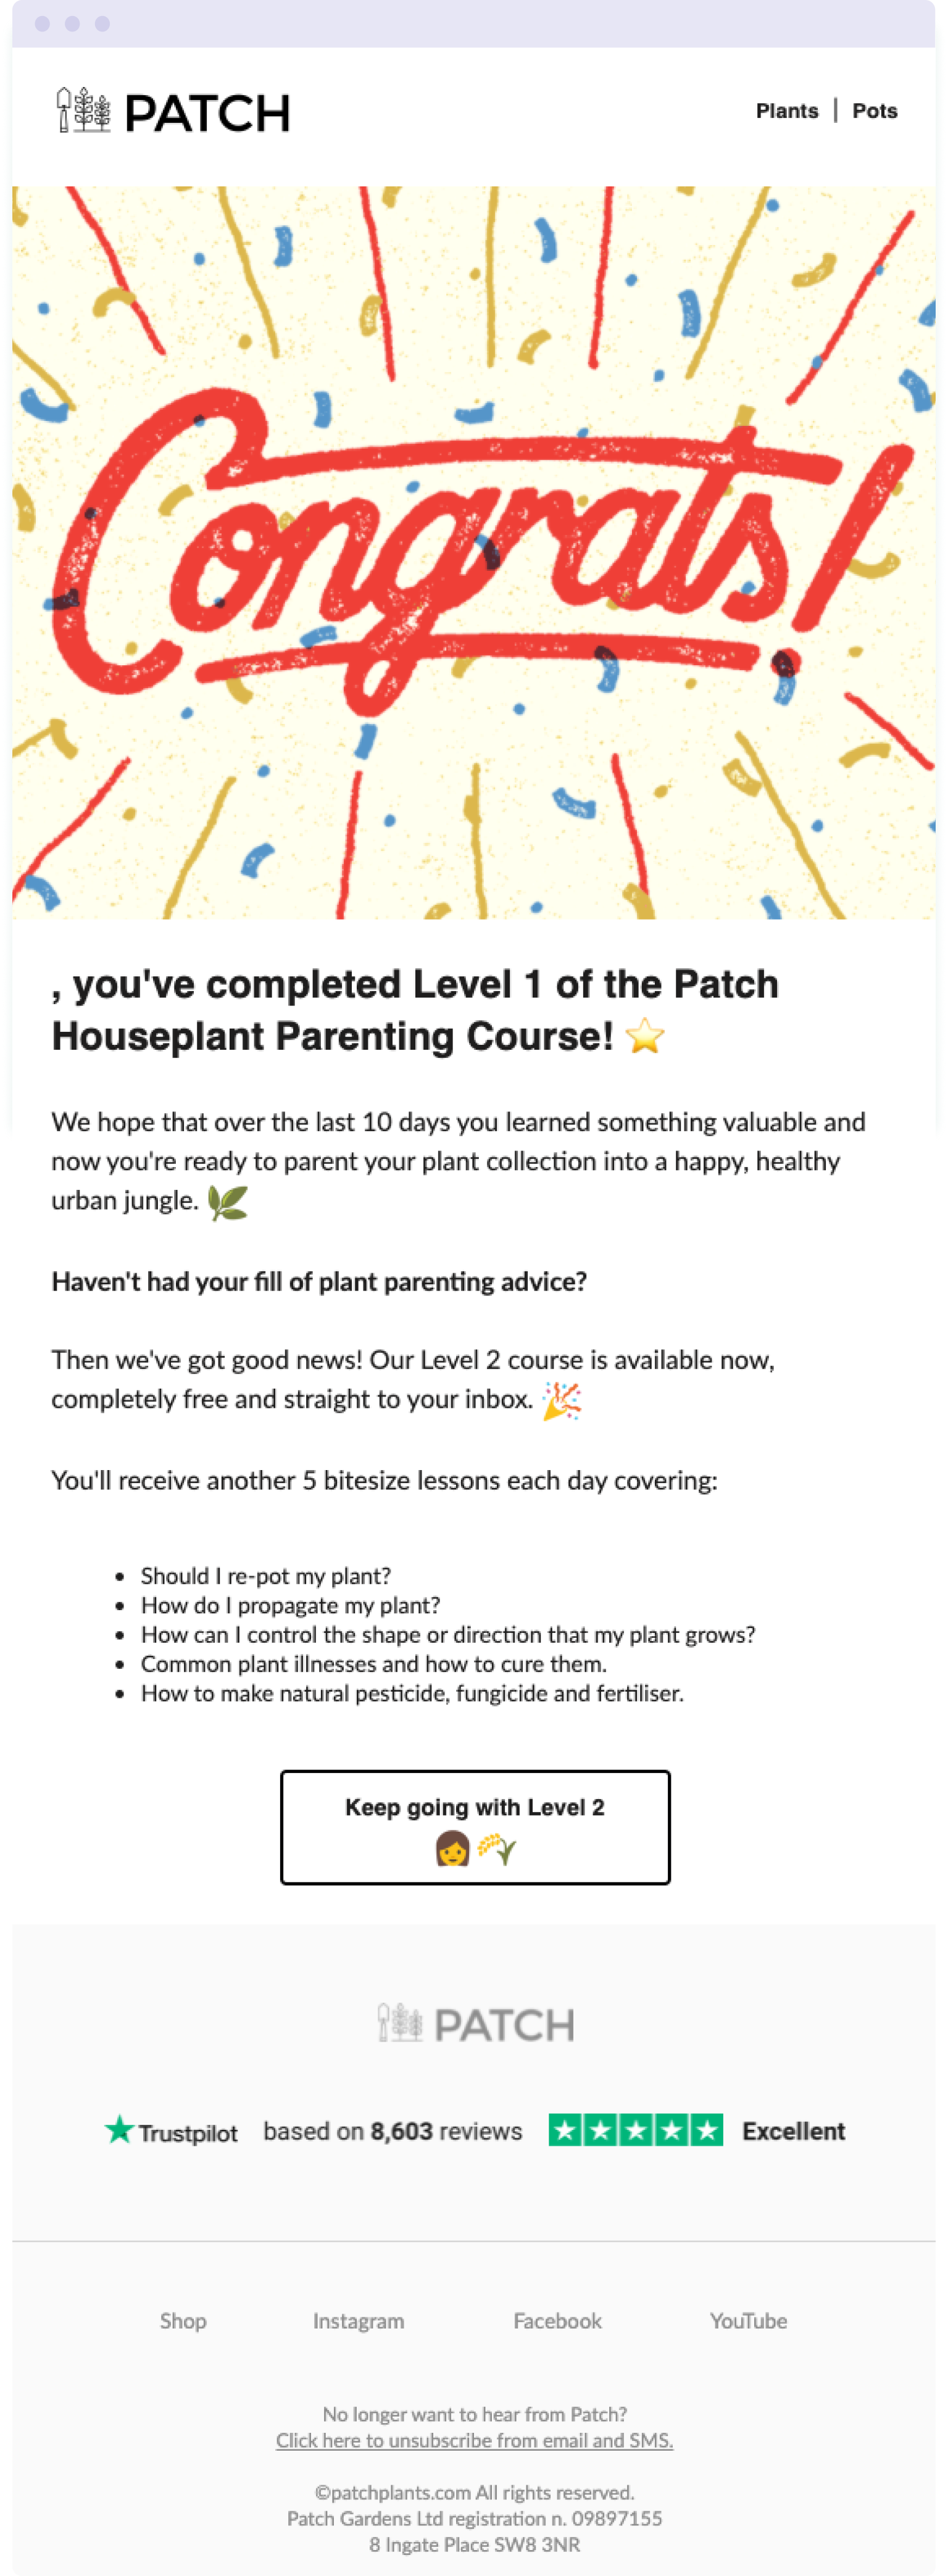 The final email in the Patch Plants' Houseplant Parenting email course – a great example of how to deliver even more value to your audience